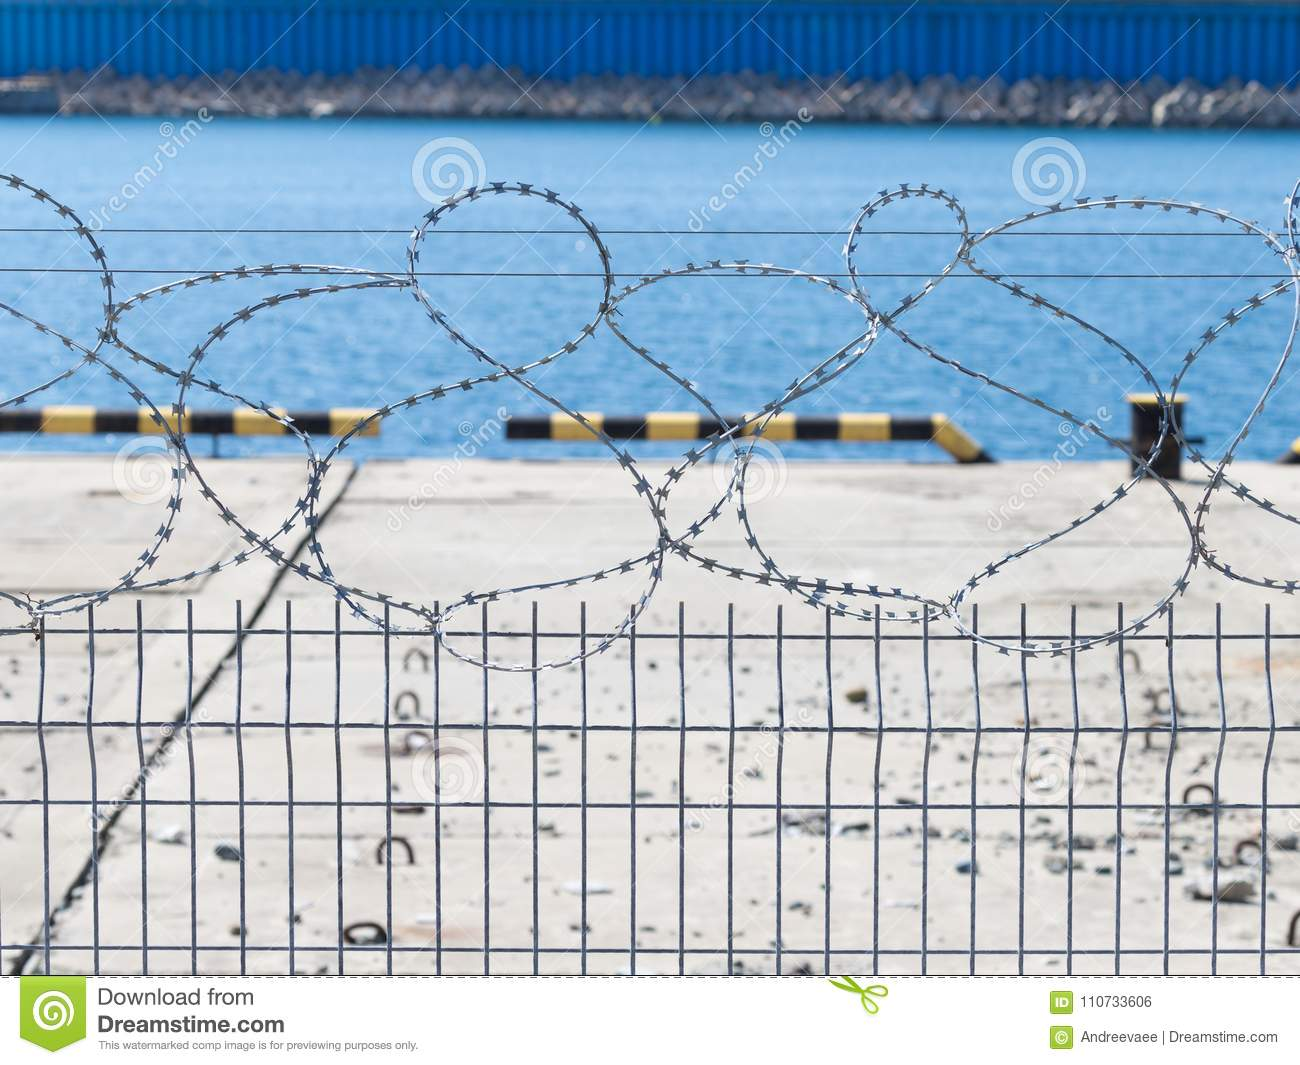 Dorable Lowe S Welded Wire Mesh Inspiration - Electrical System ...